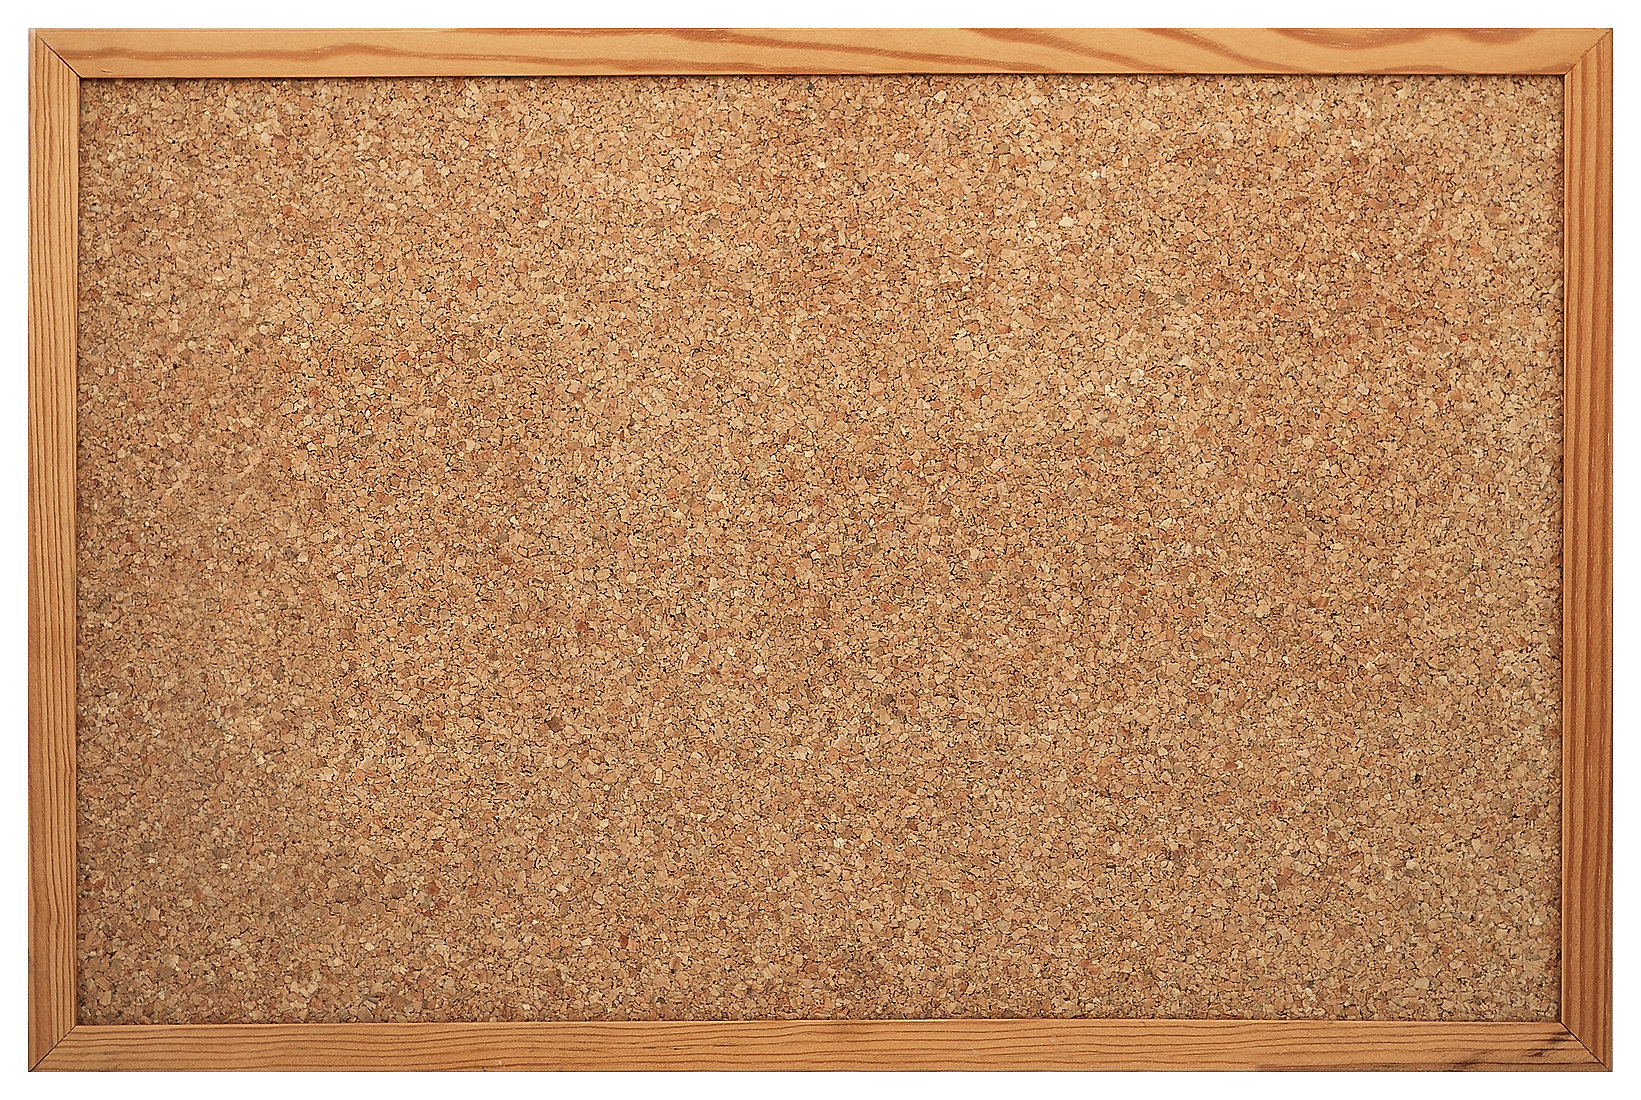 Blank Cork board with wooden frame (isol